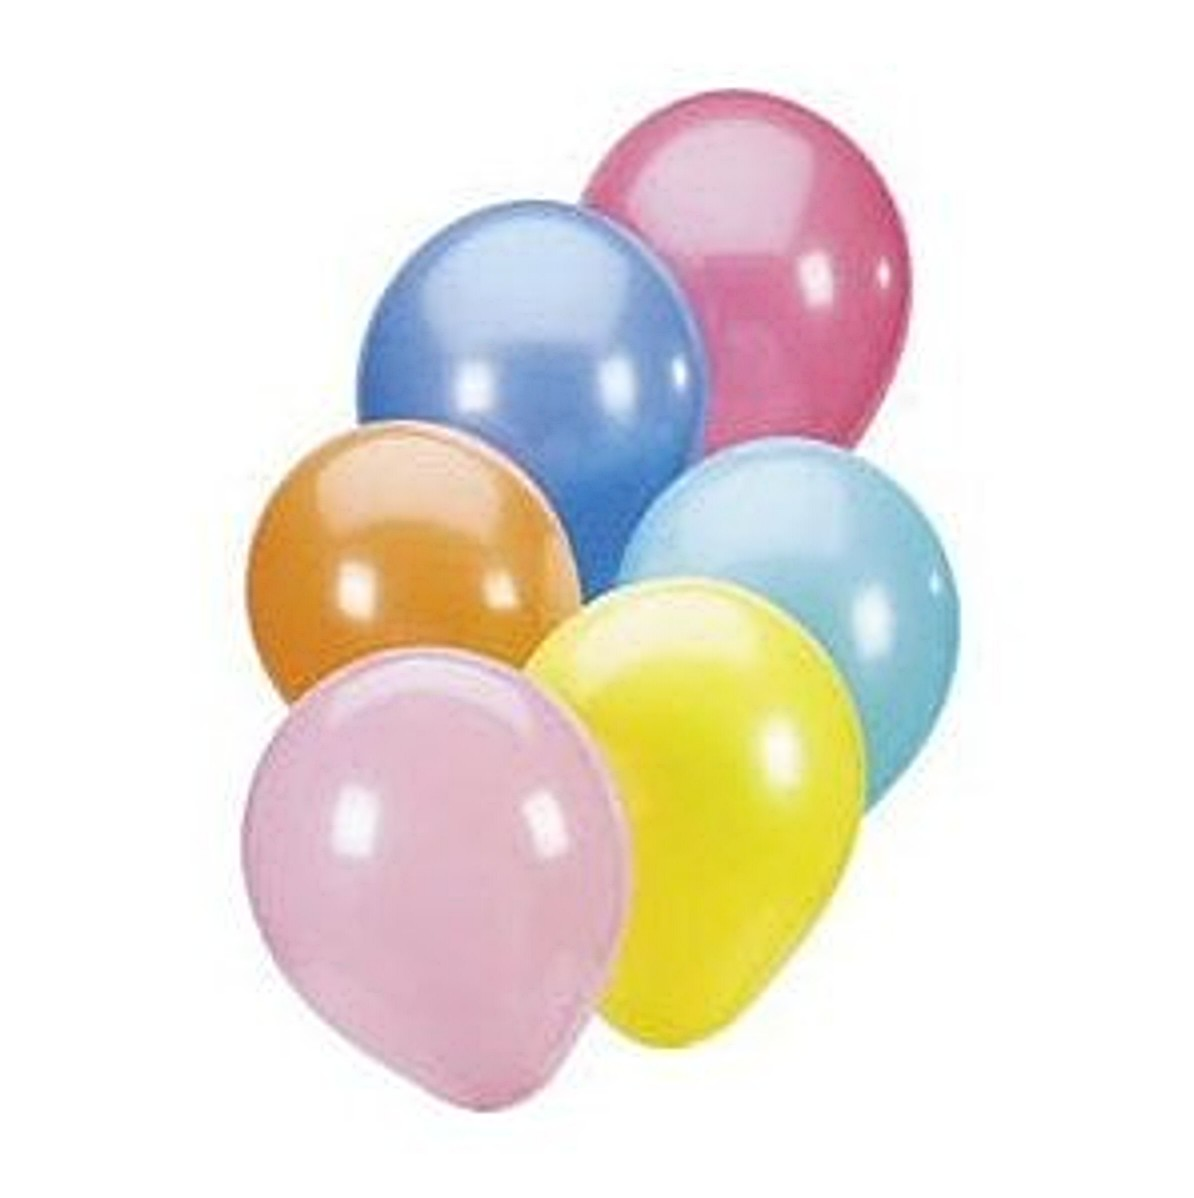 Balloon Supplies